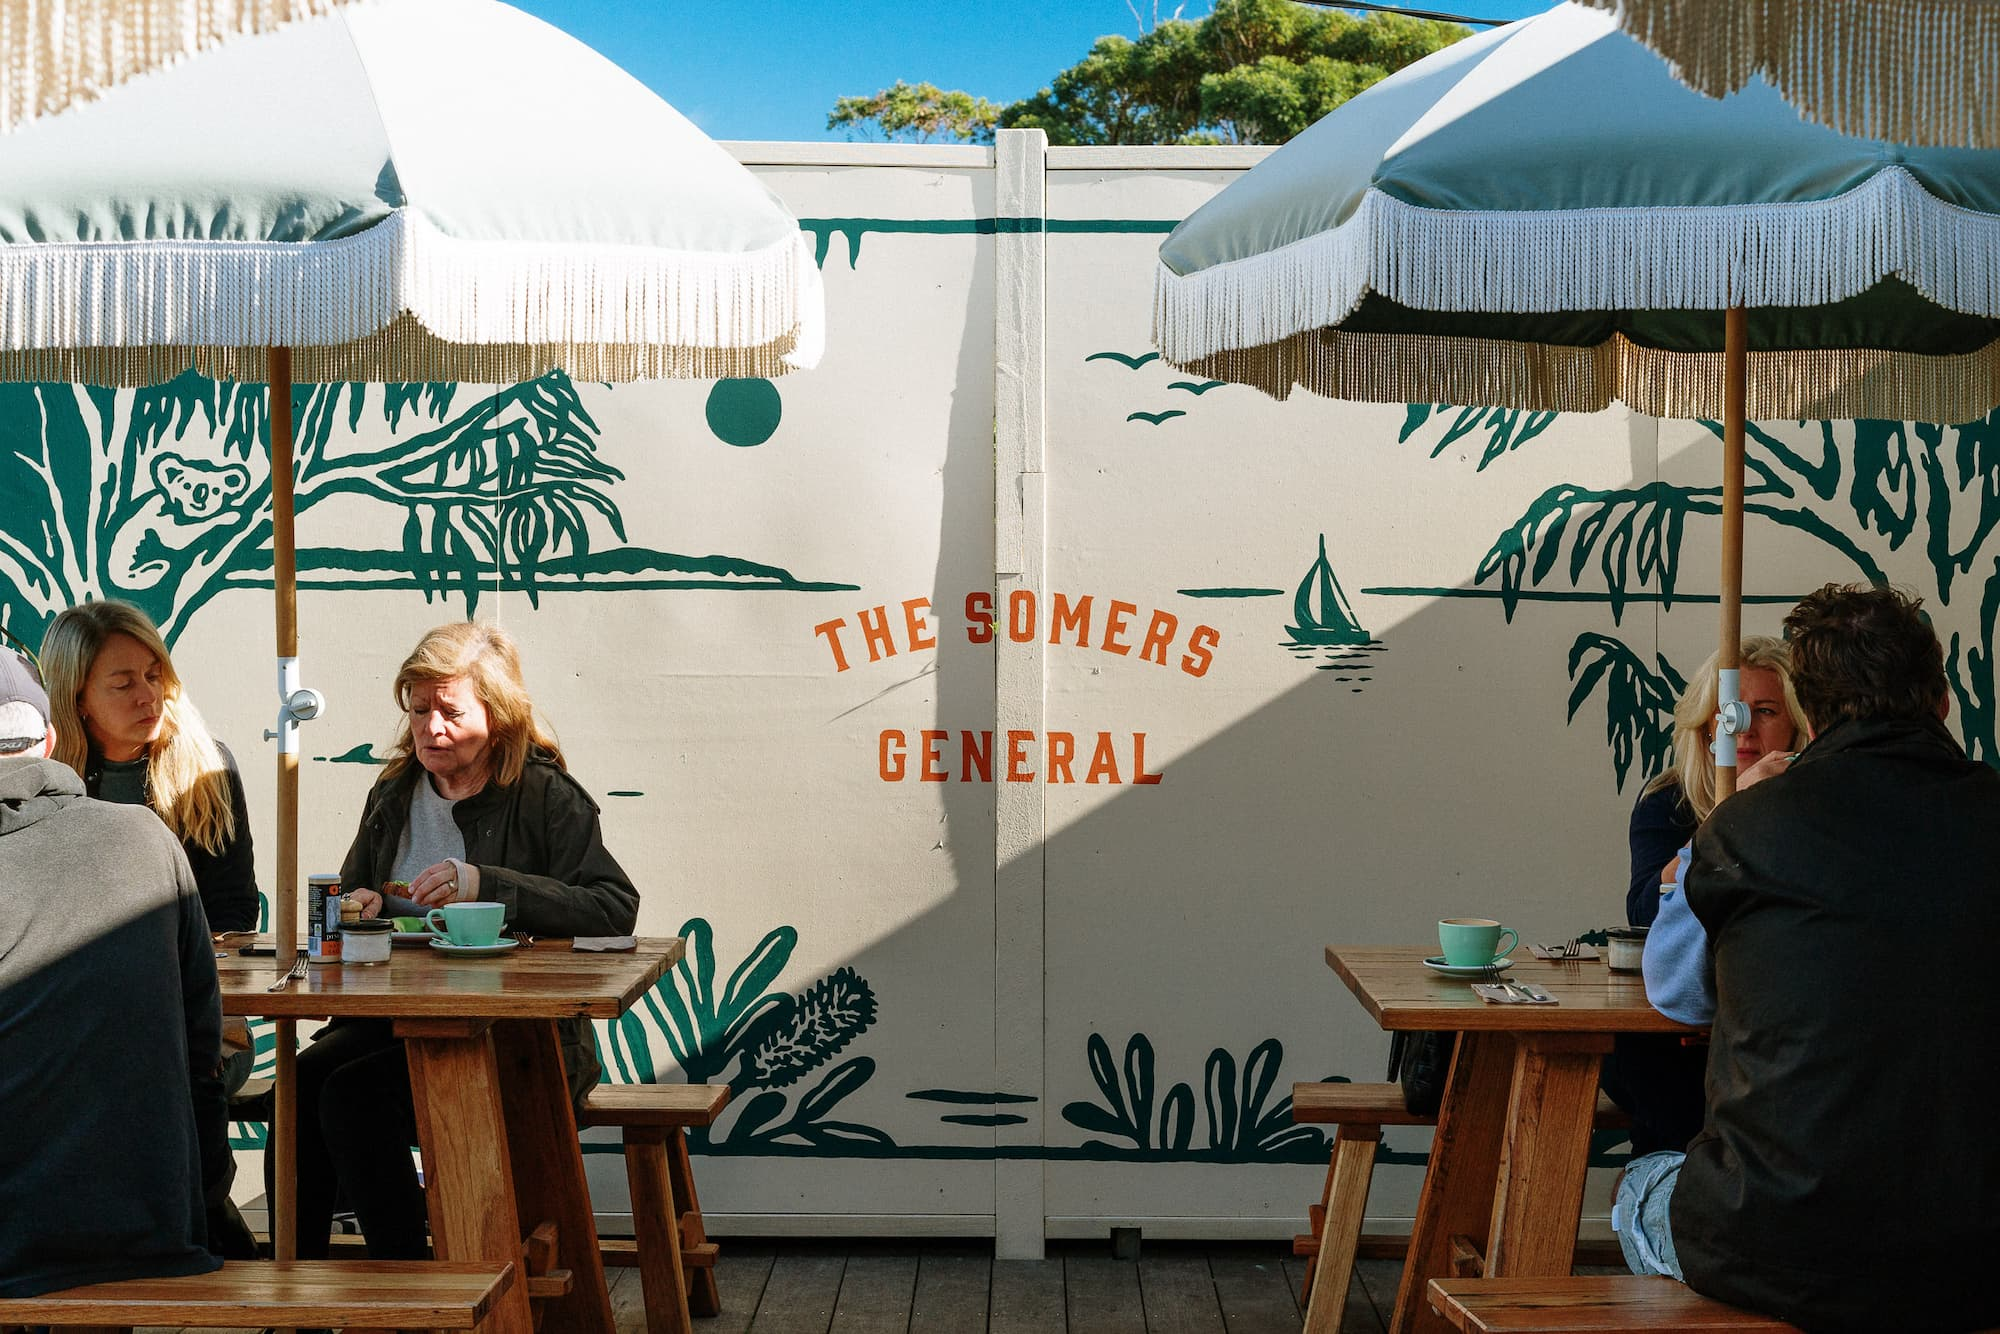 The Somers General